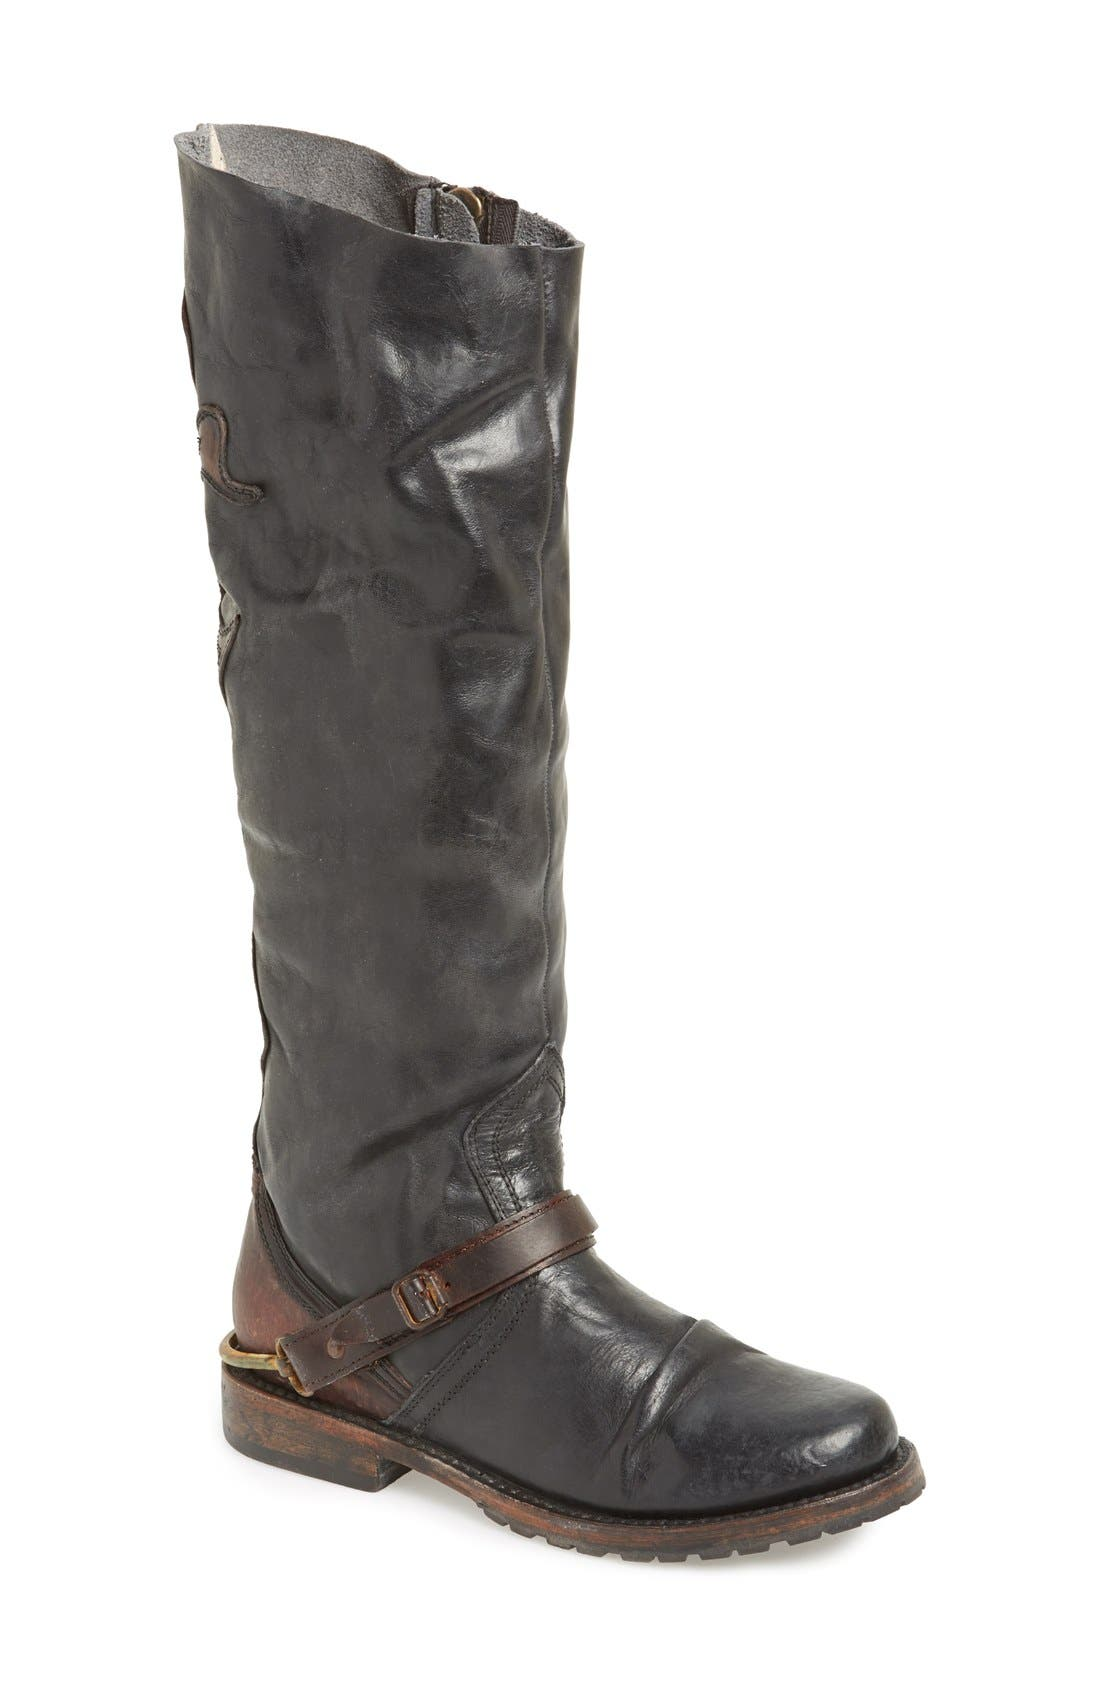 Alternate Image 1 Selected - Freebird by Steven 'Lyon' Leather Riding Boot (Women)